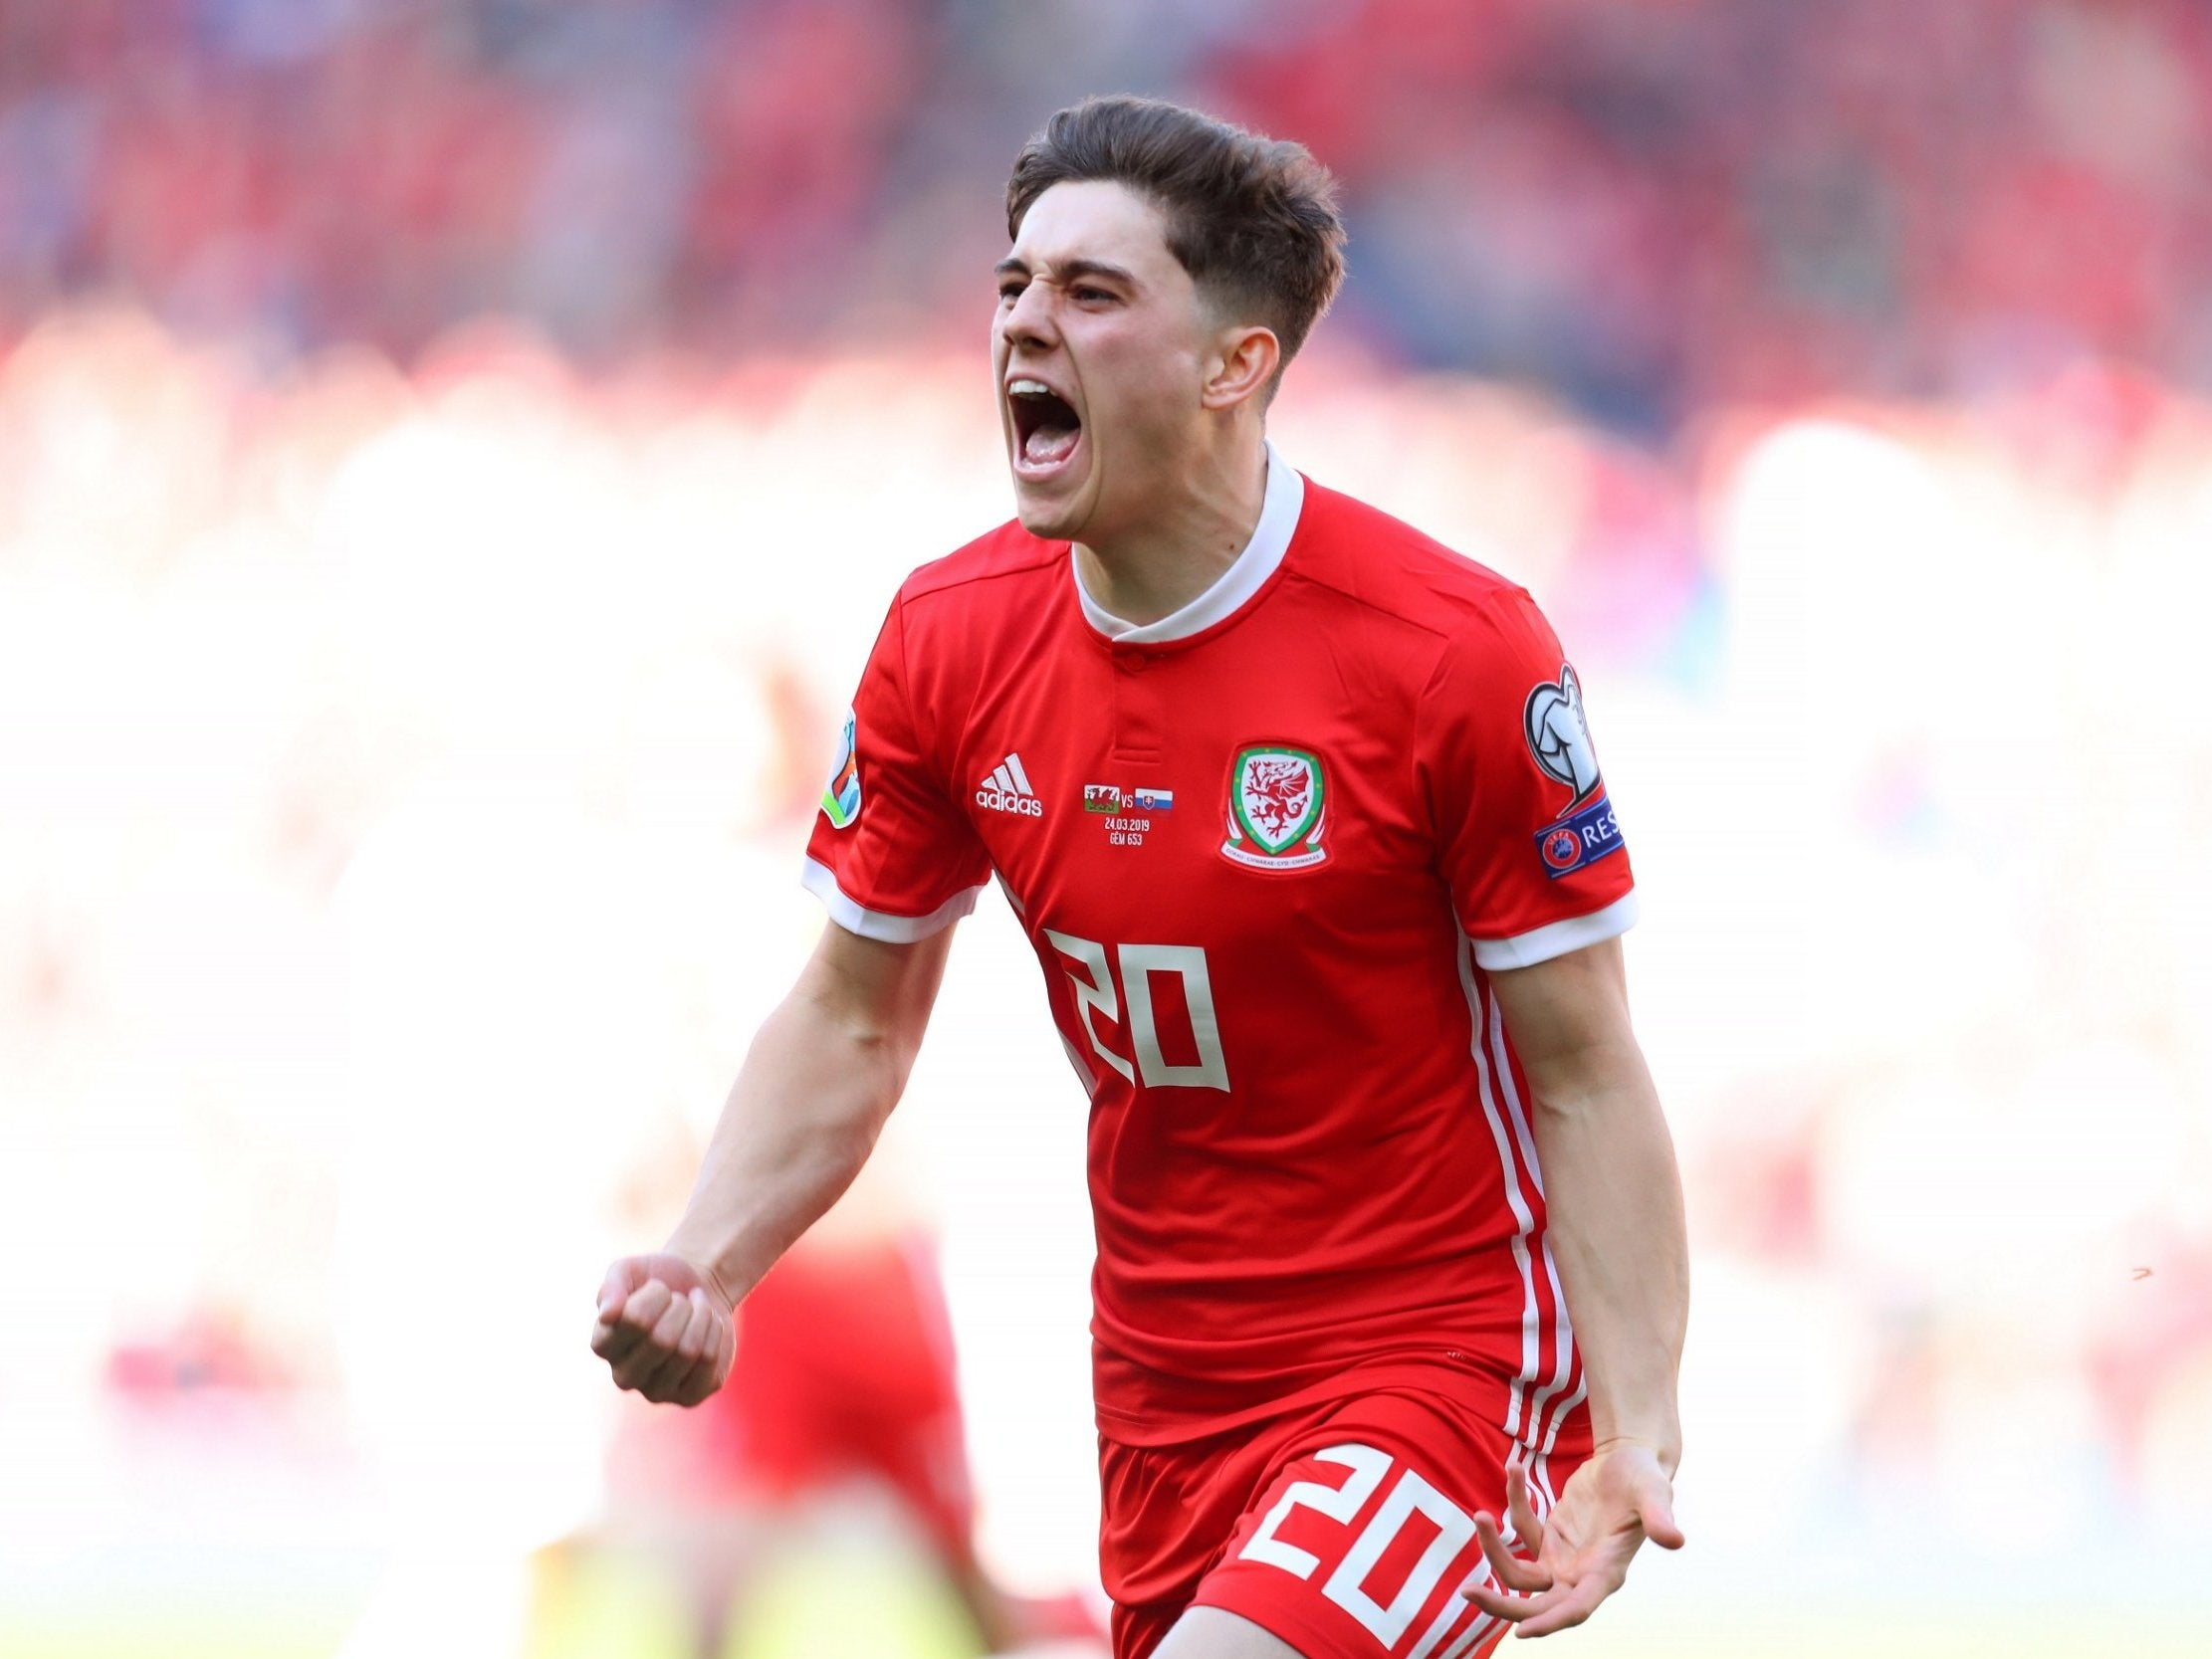 Daniel James: Ryan Giggs hails 'amazing' Manchester United star after inspiring Wales past Belarus